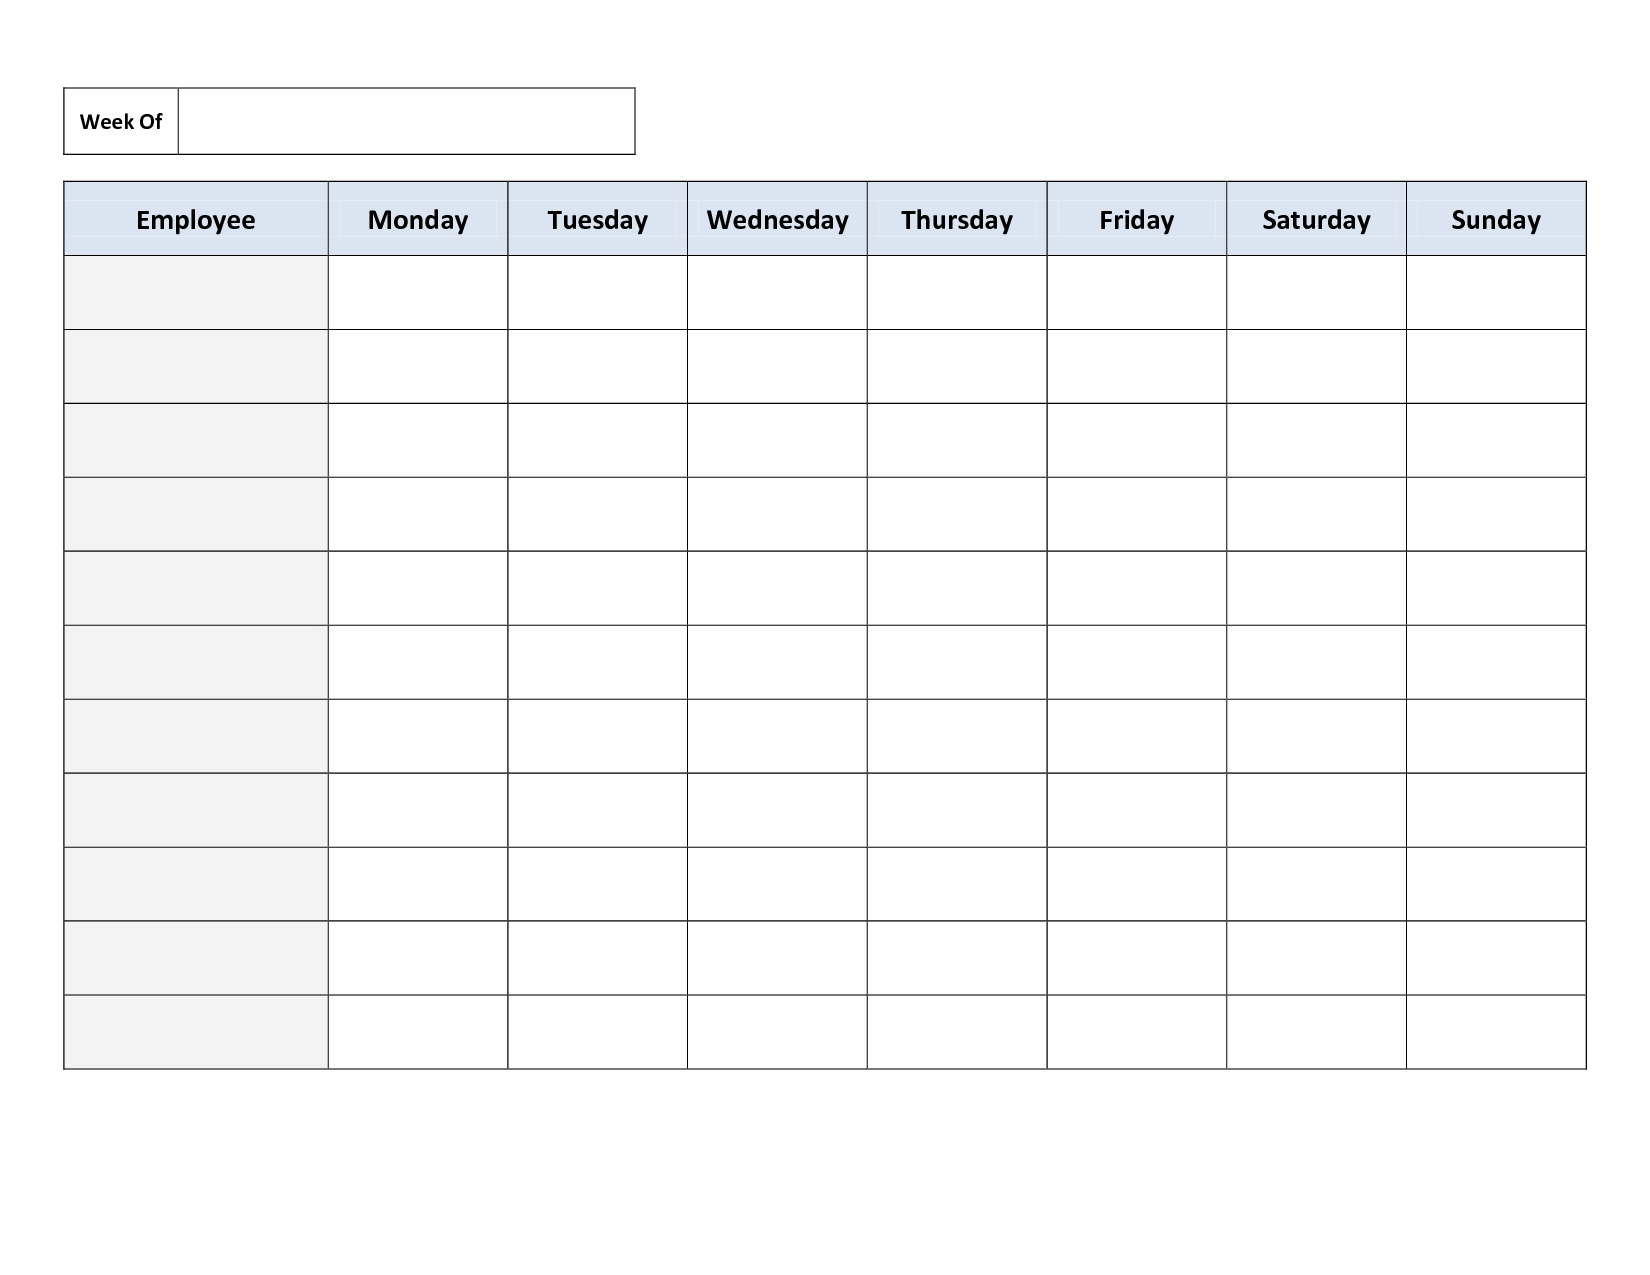 Weekly Employee Work Schedule Template. Free Blank Schedule.pdf - Free Printable Schedule